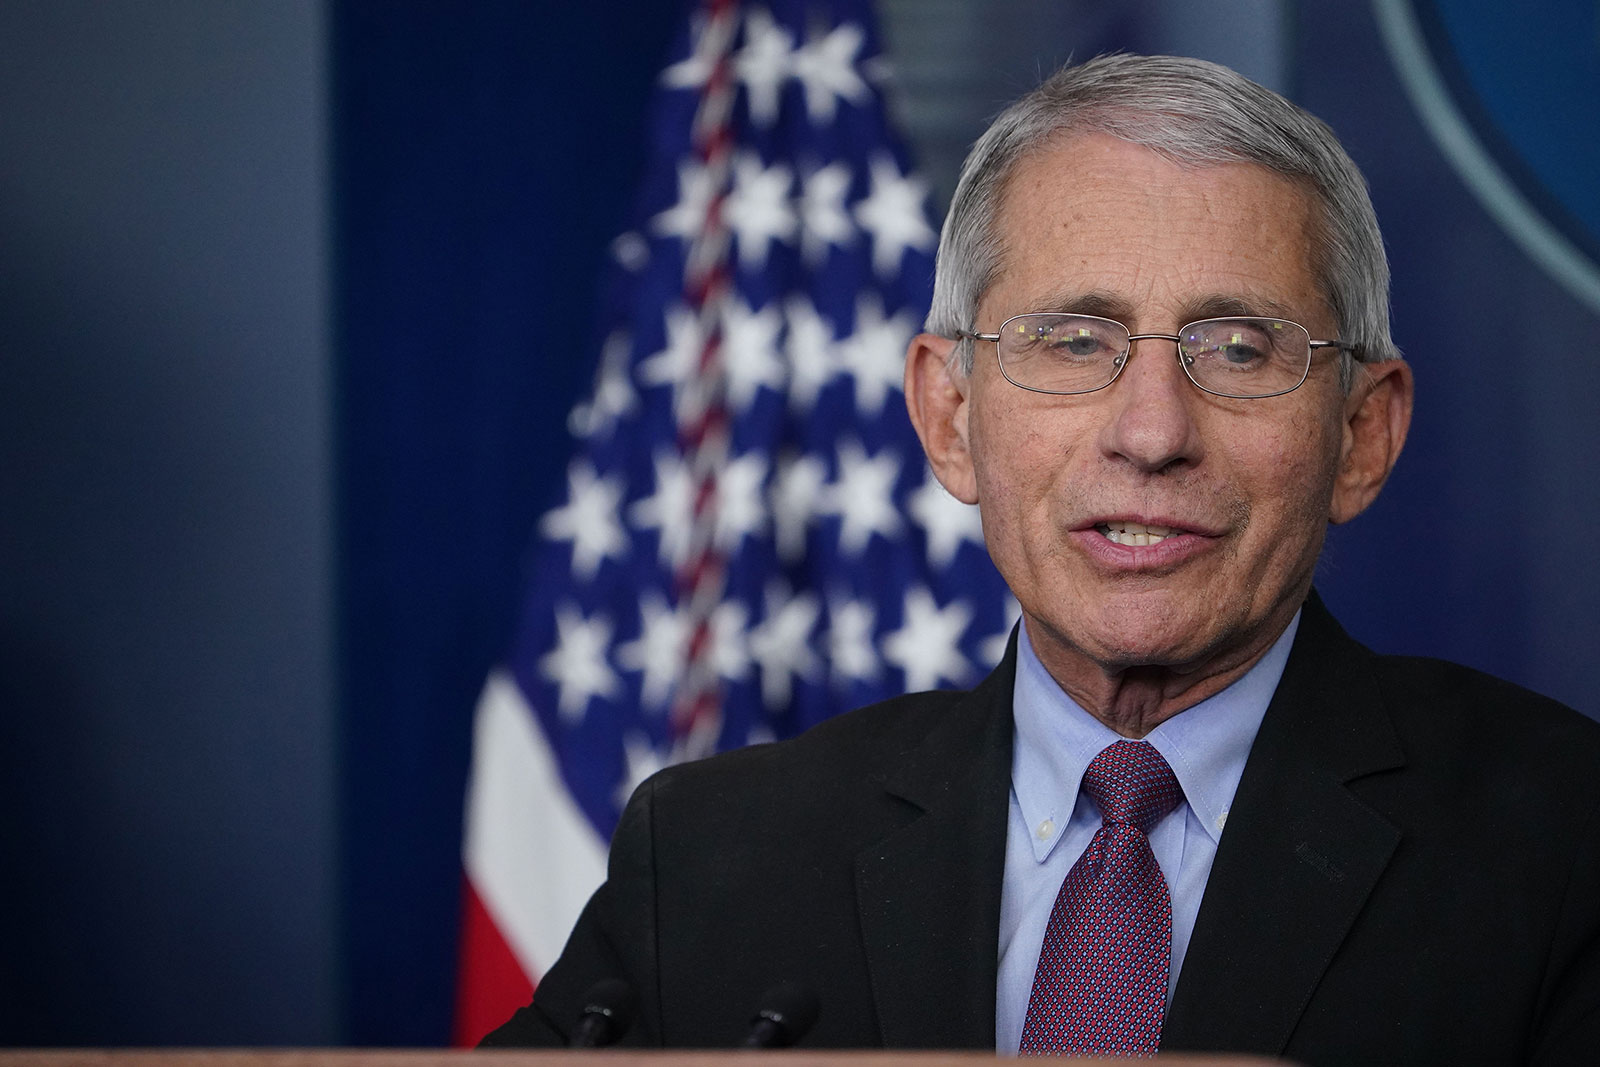 Dr. Anthony Fauci speaks during a coronavirus task force briefing at the White House in April.